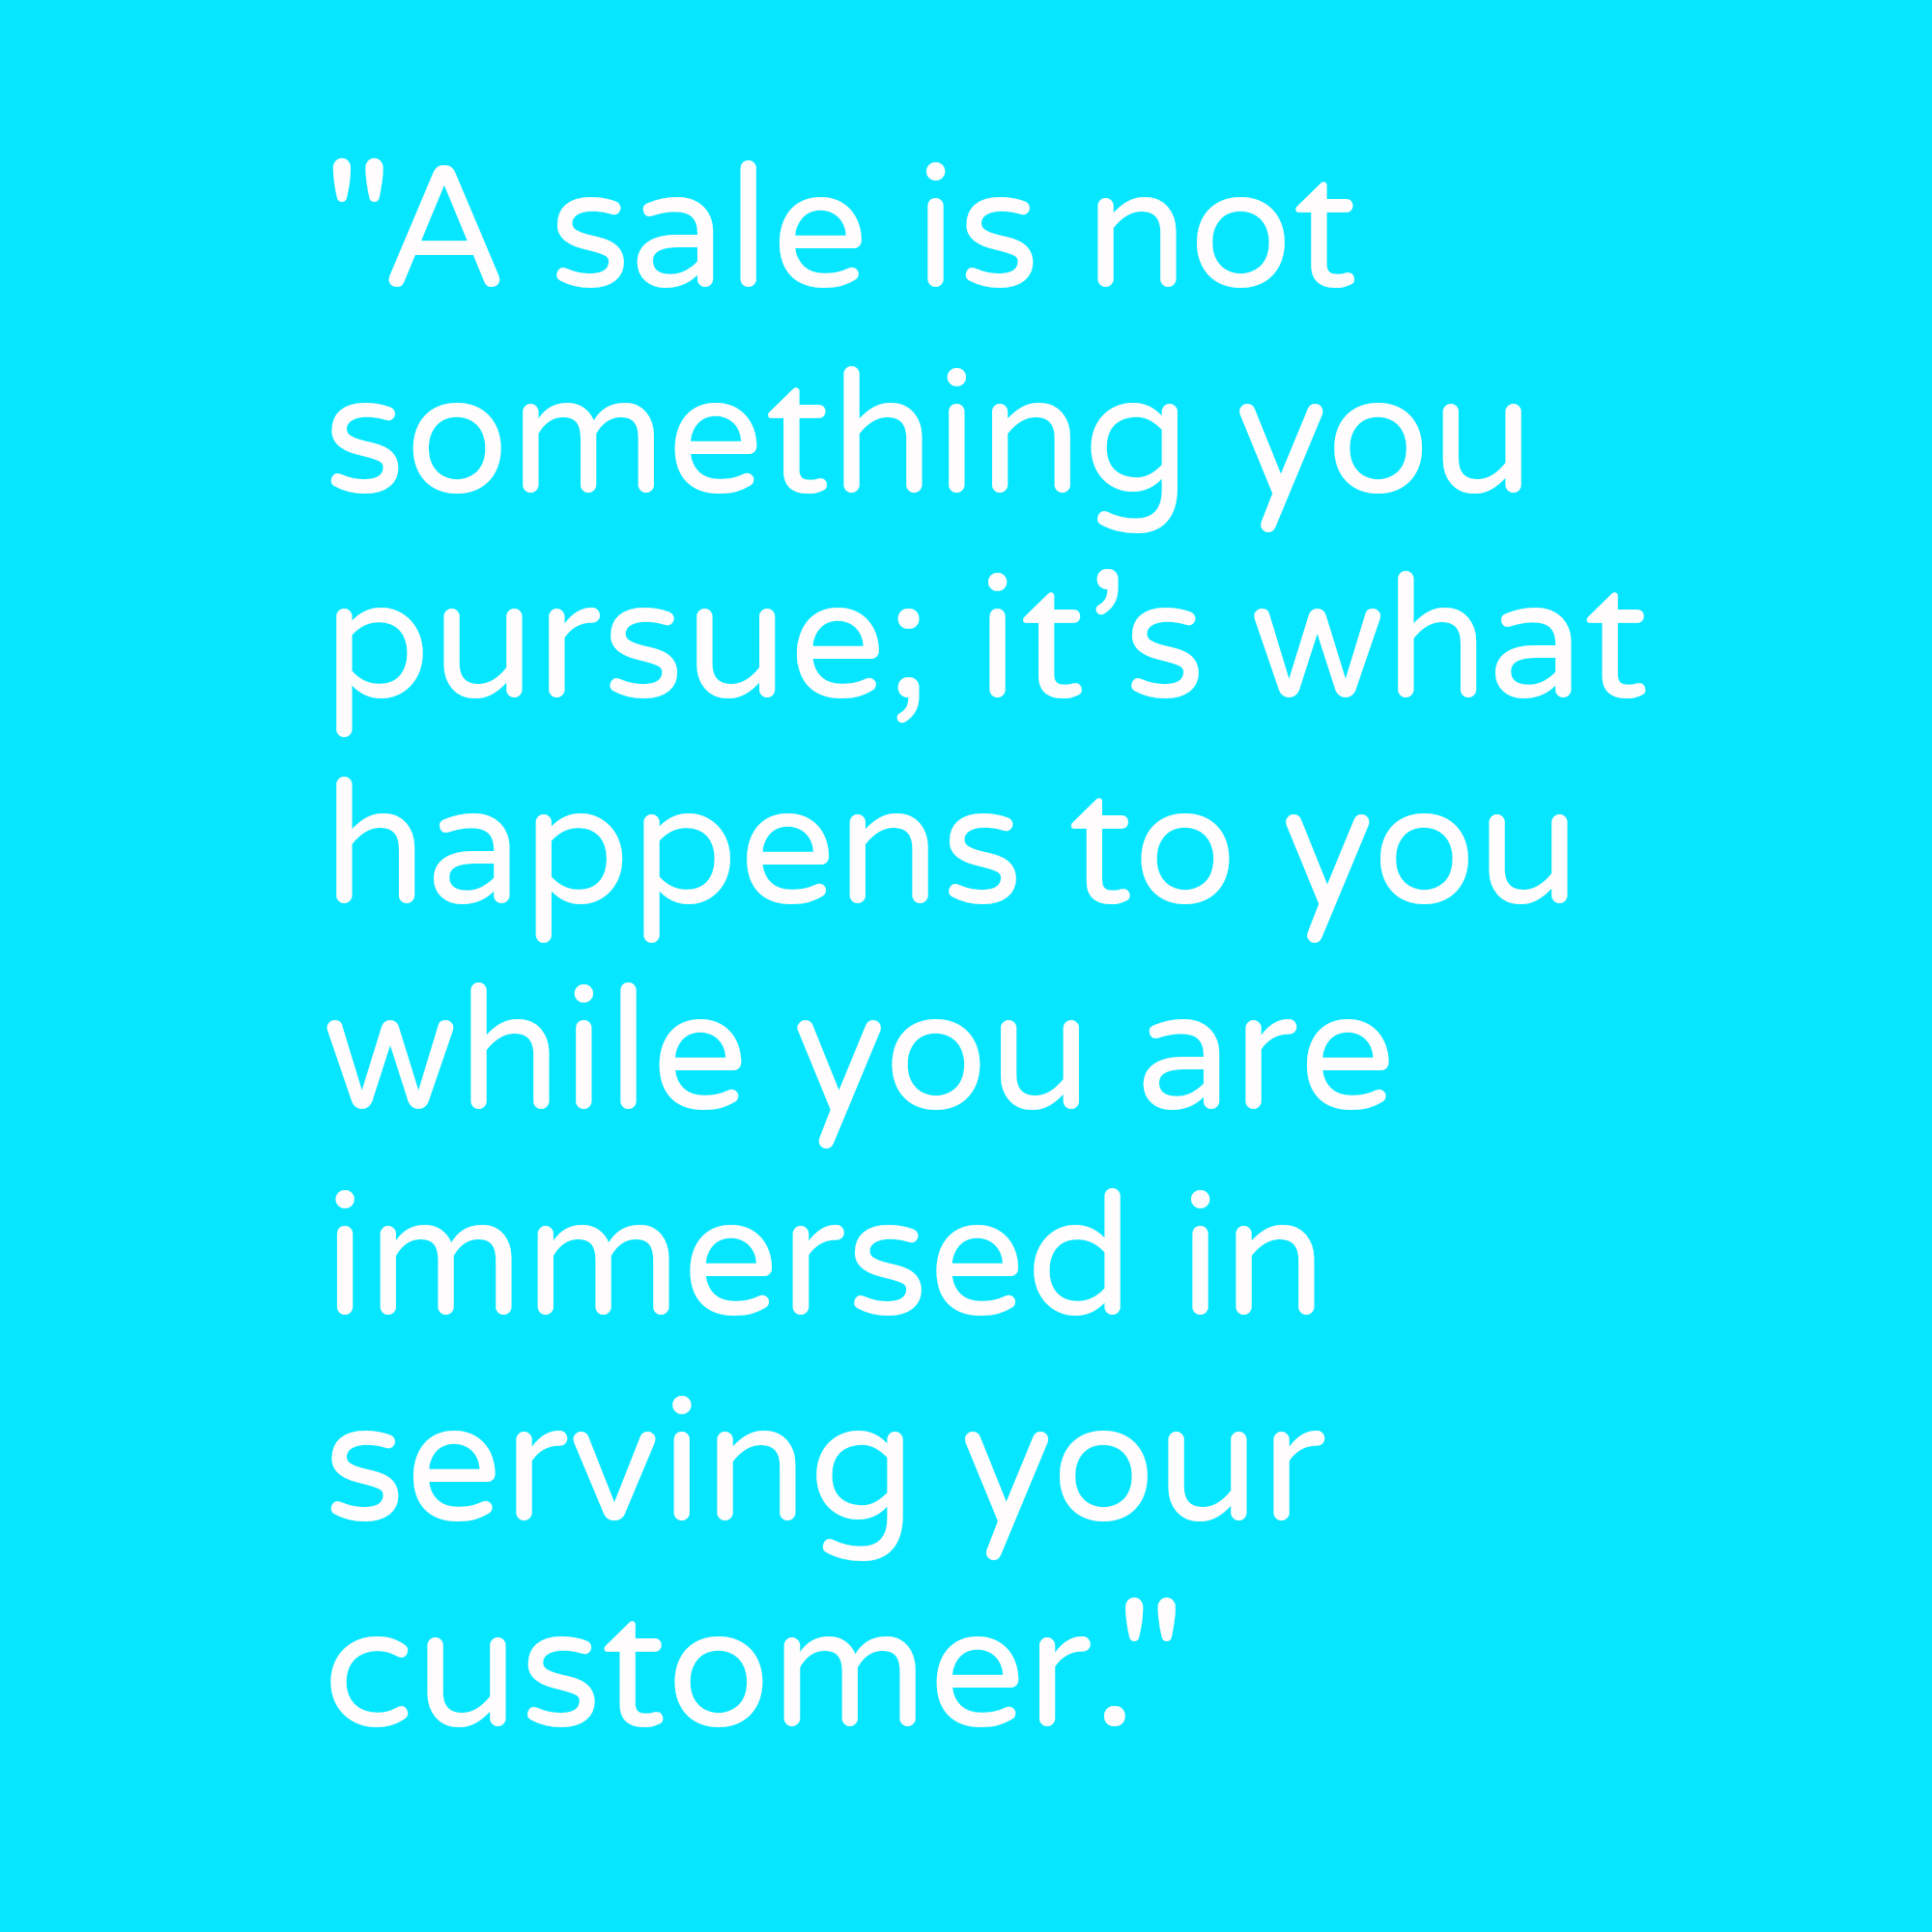 How Do You Run Your Business? #Motivational #Sales #Quotes